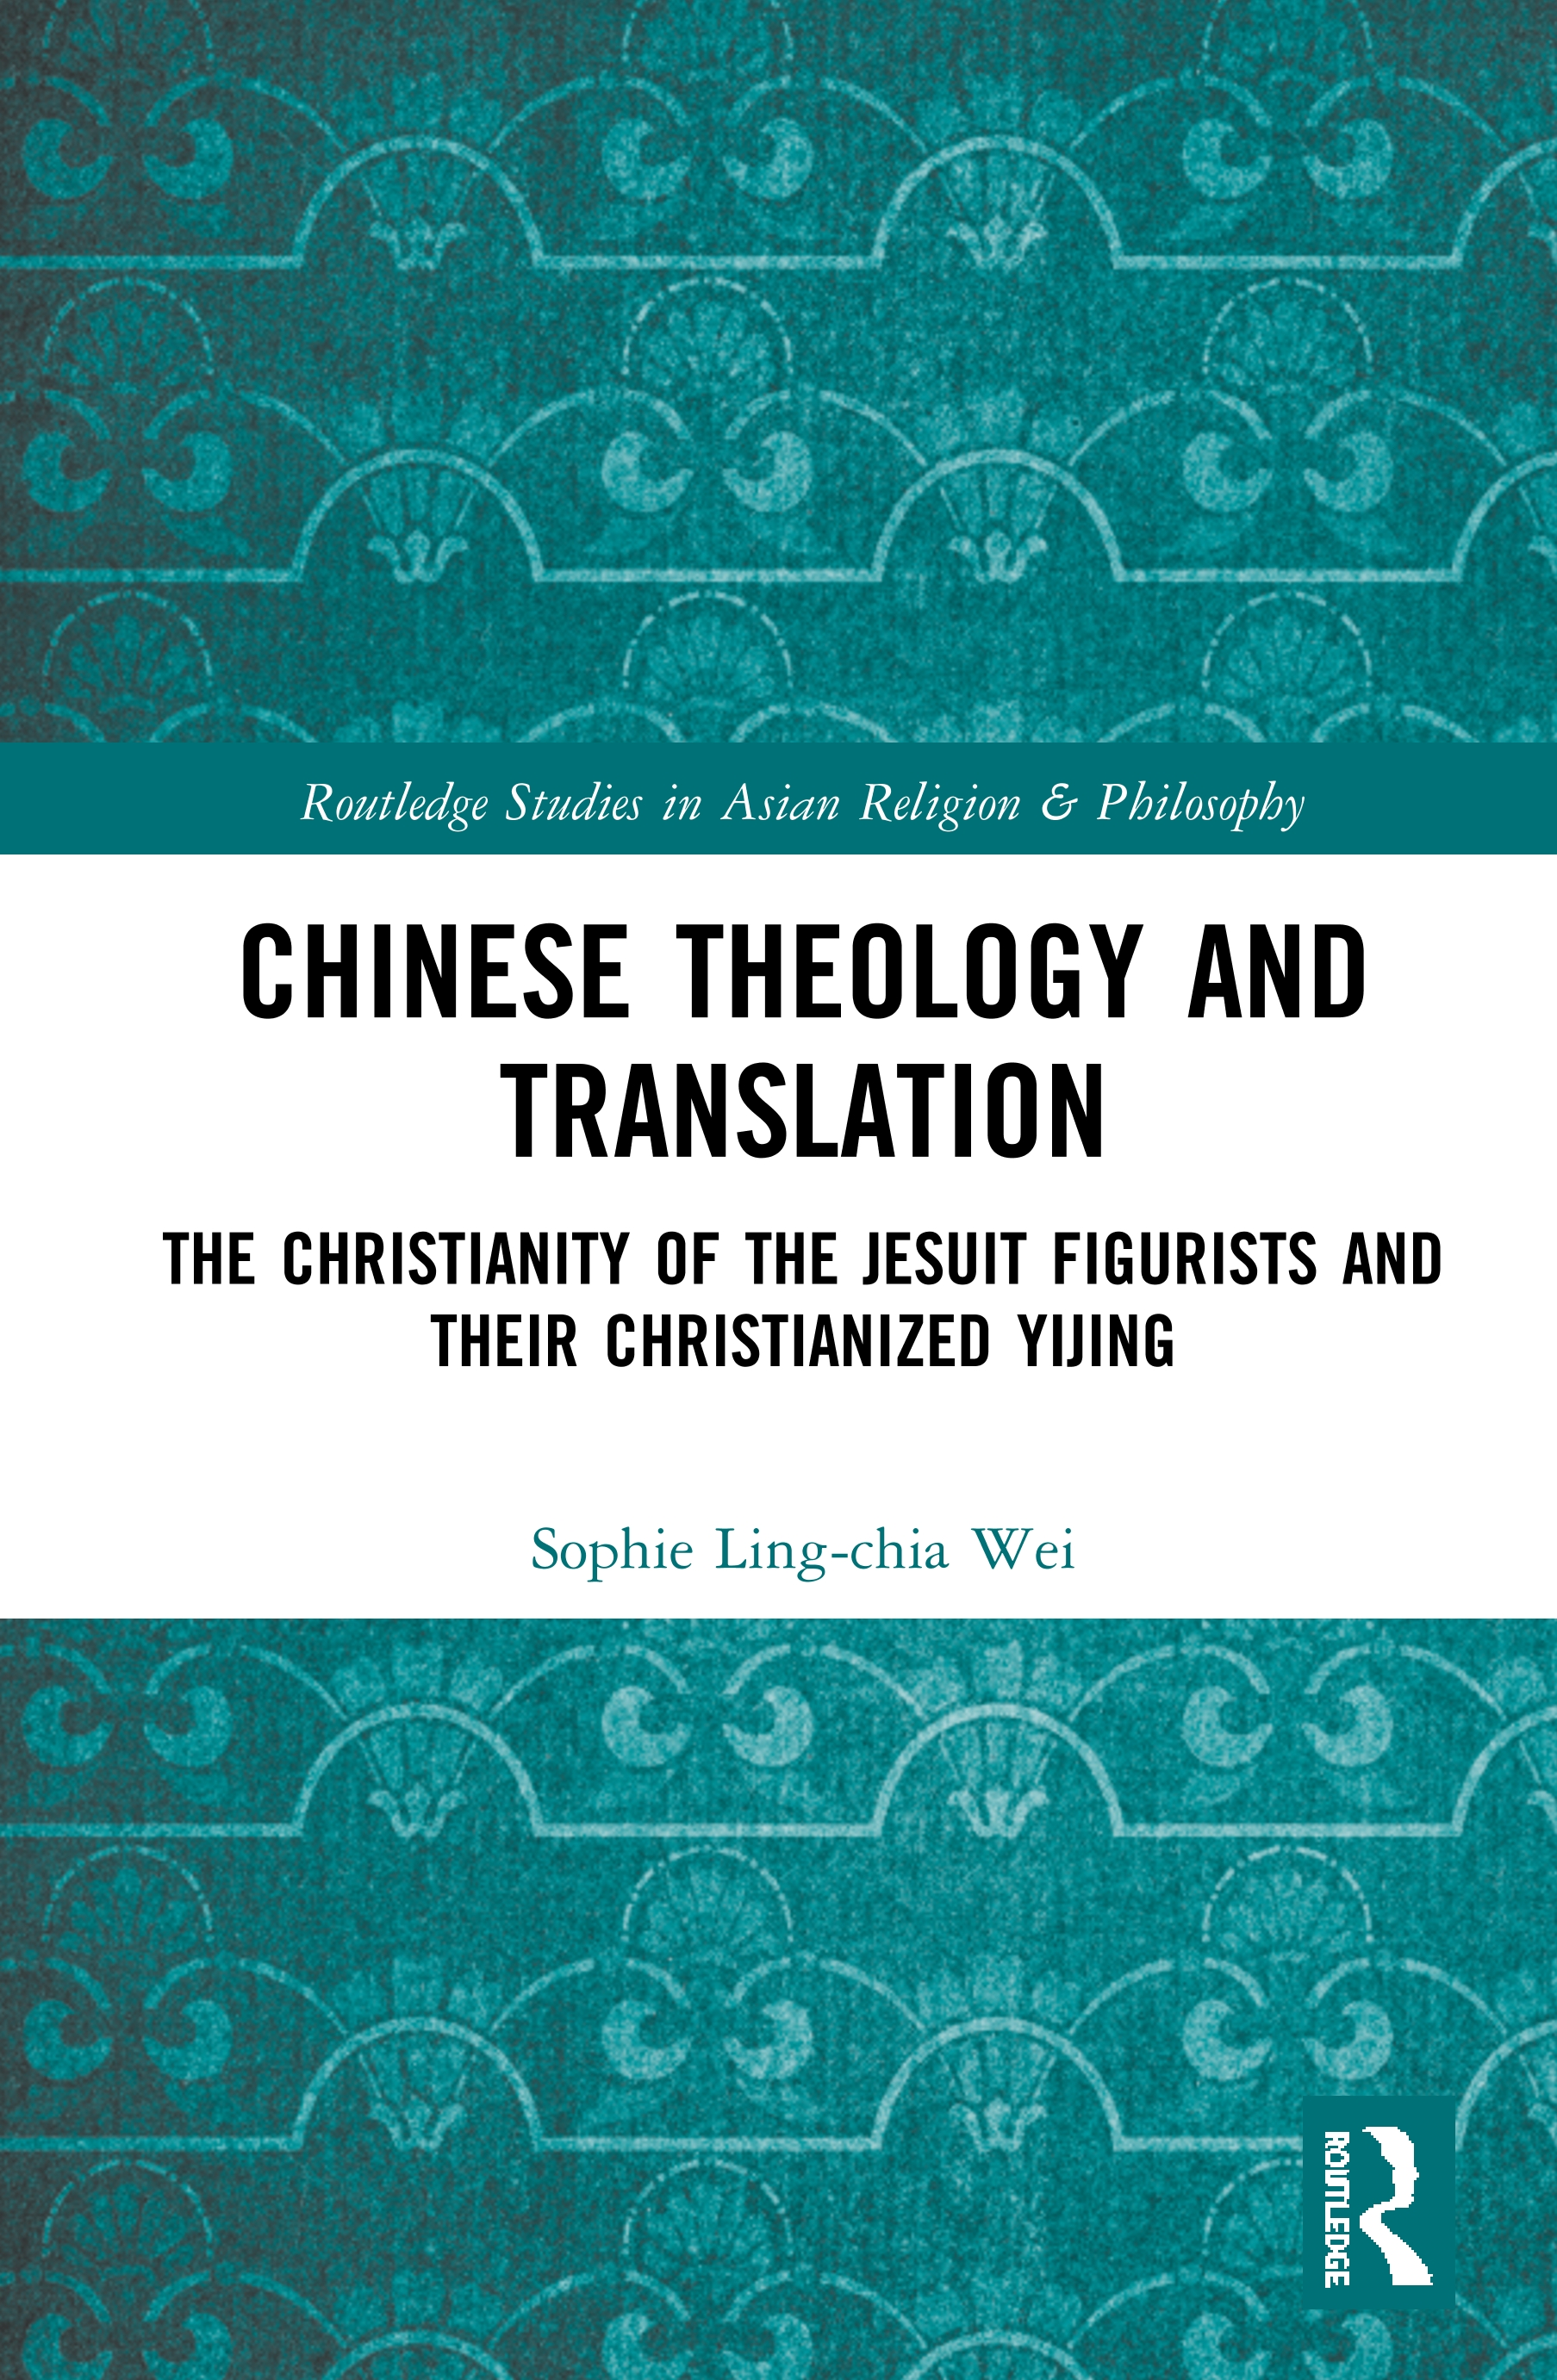 Chinese Theology and Translation: The Christianity of the Jesuit Figurists and their Christianized Yijing book cover